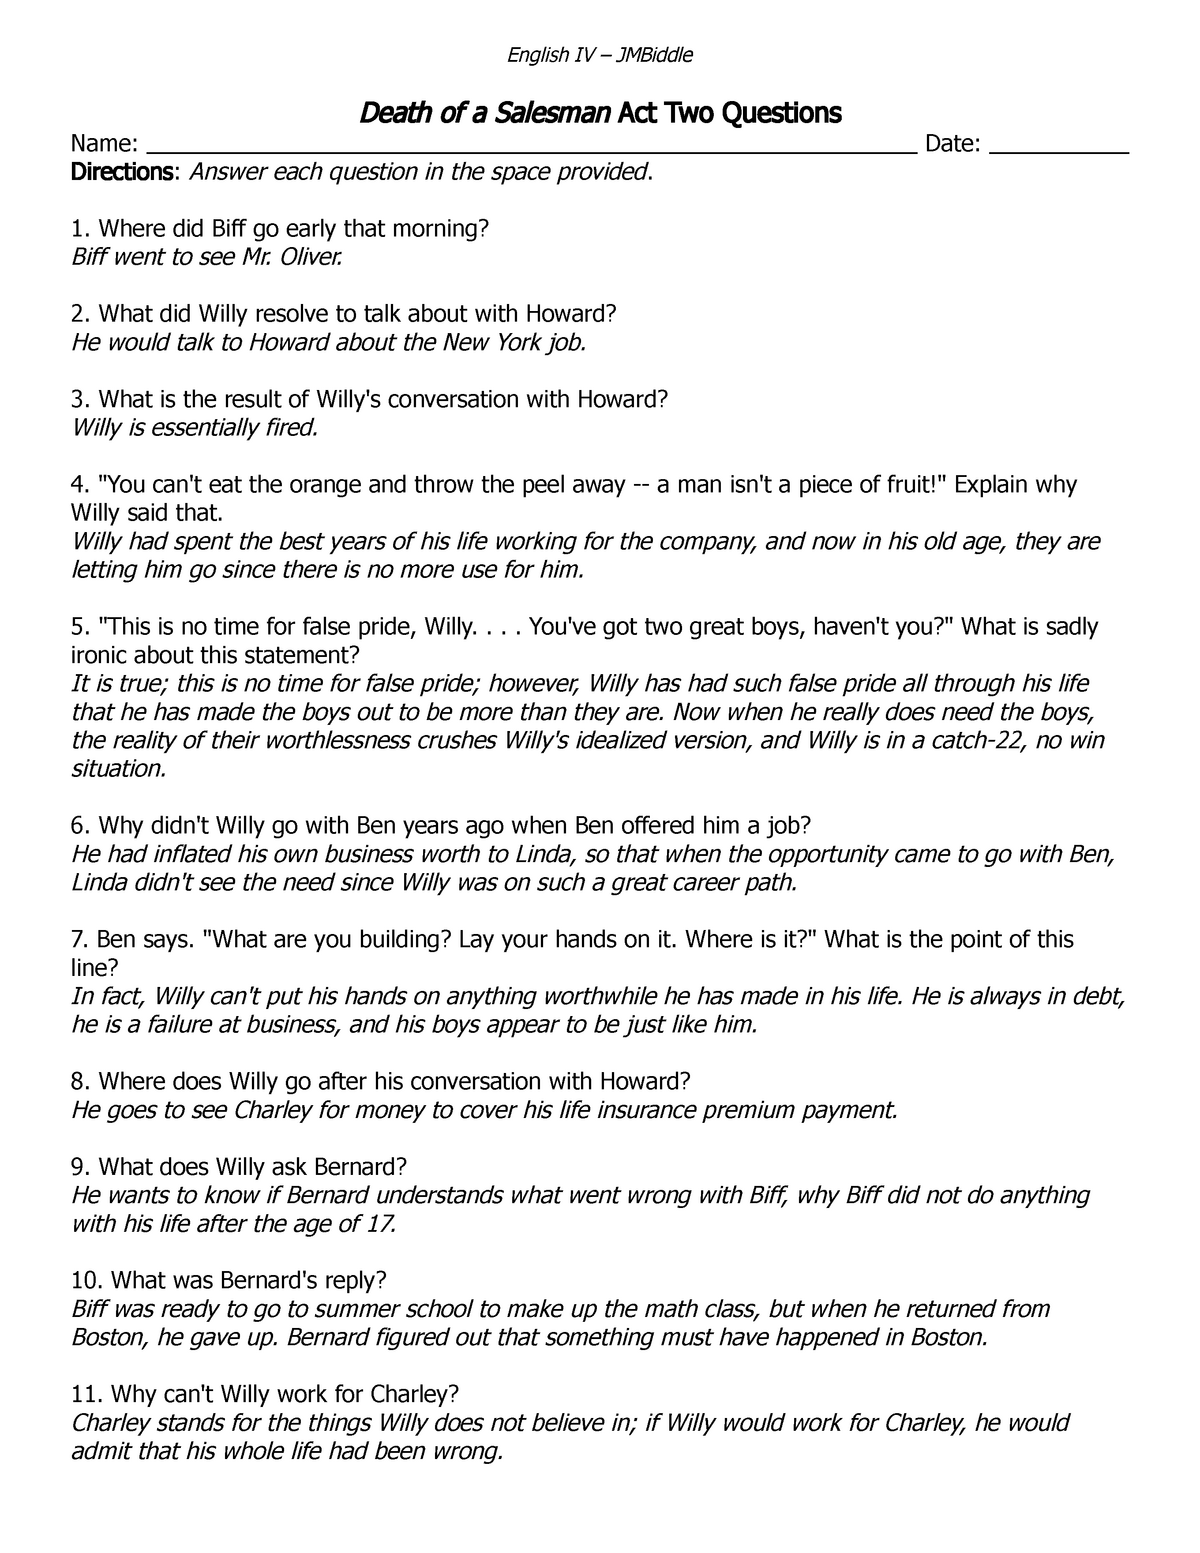 7- Death OF A Salesman Act II questions with answers - SPAN 554